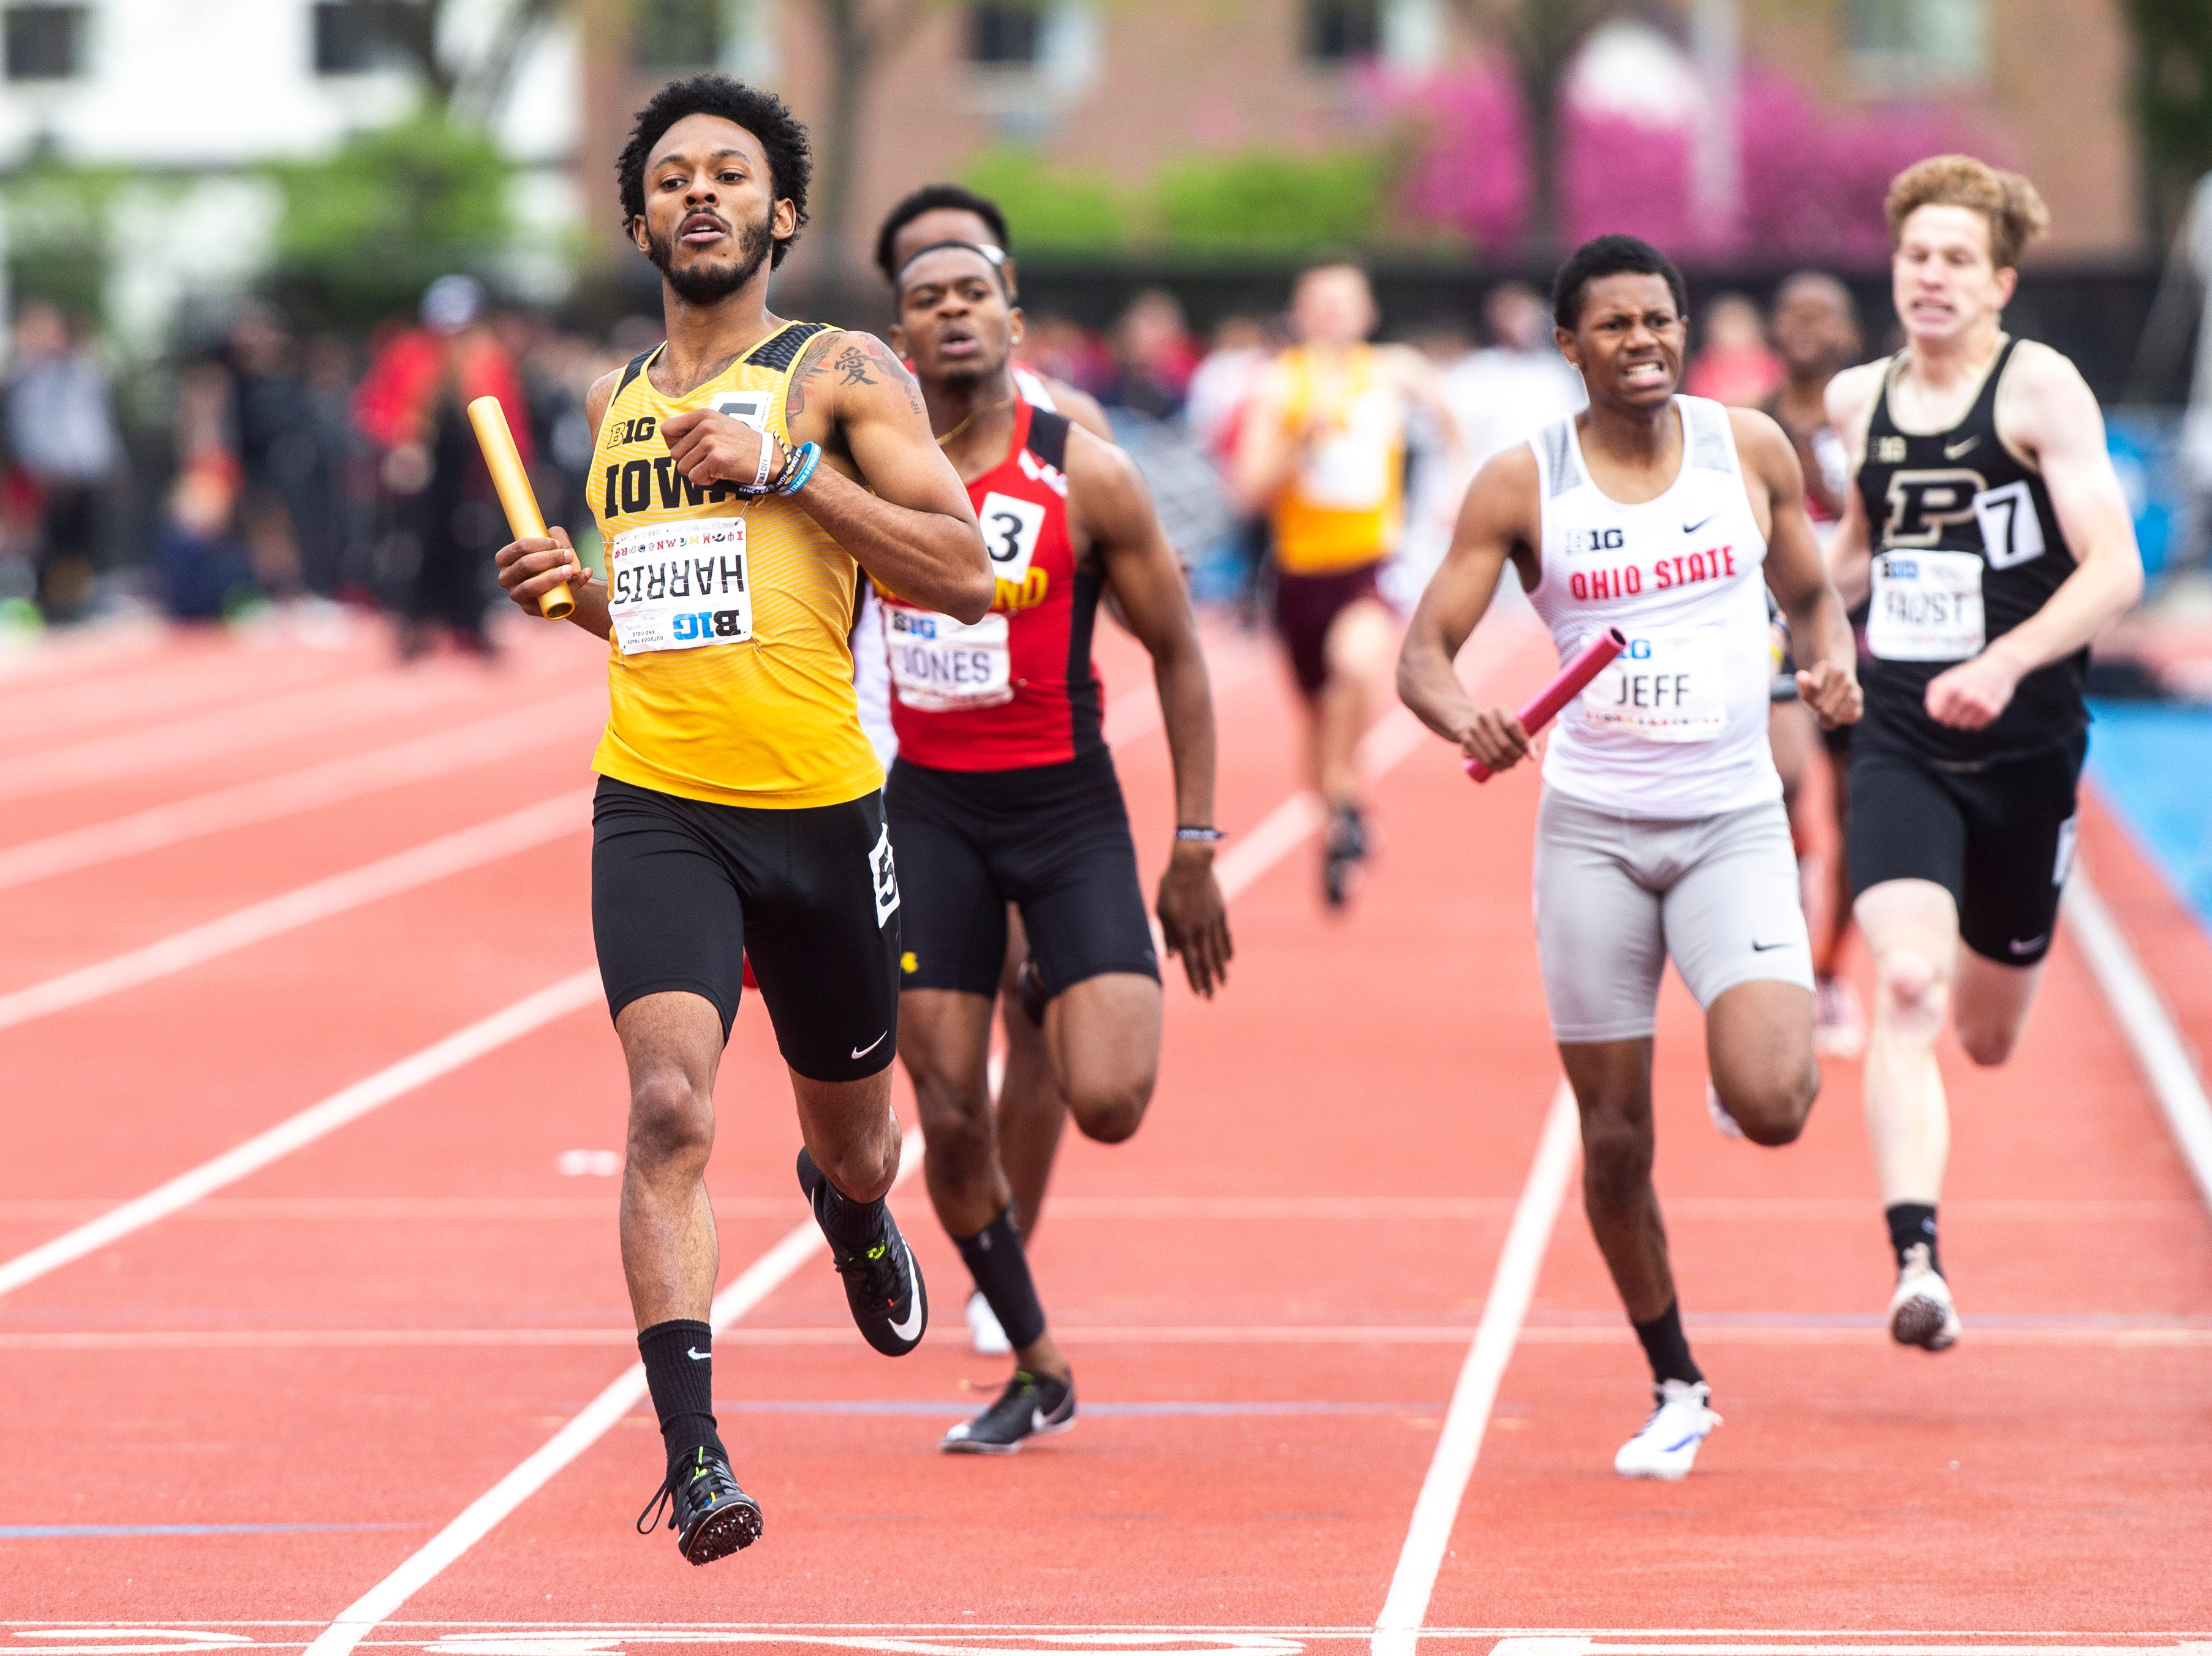 Iowa's Mar'yea Harris crosses the finish line in the 4x400 meter relay during the final day of Big Ten track and field outdoor championships, Sunday, May 12, 2019, at Francis X. Cretzmeyer Track on the University of Iowa campus in Iowa City, Iowa. The Hawkeyes won, with a time of 3:07.36.